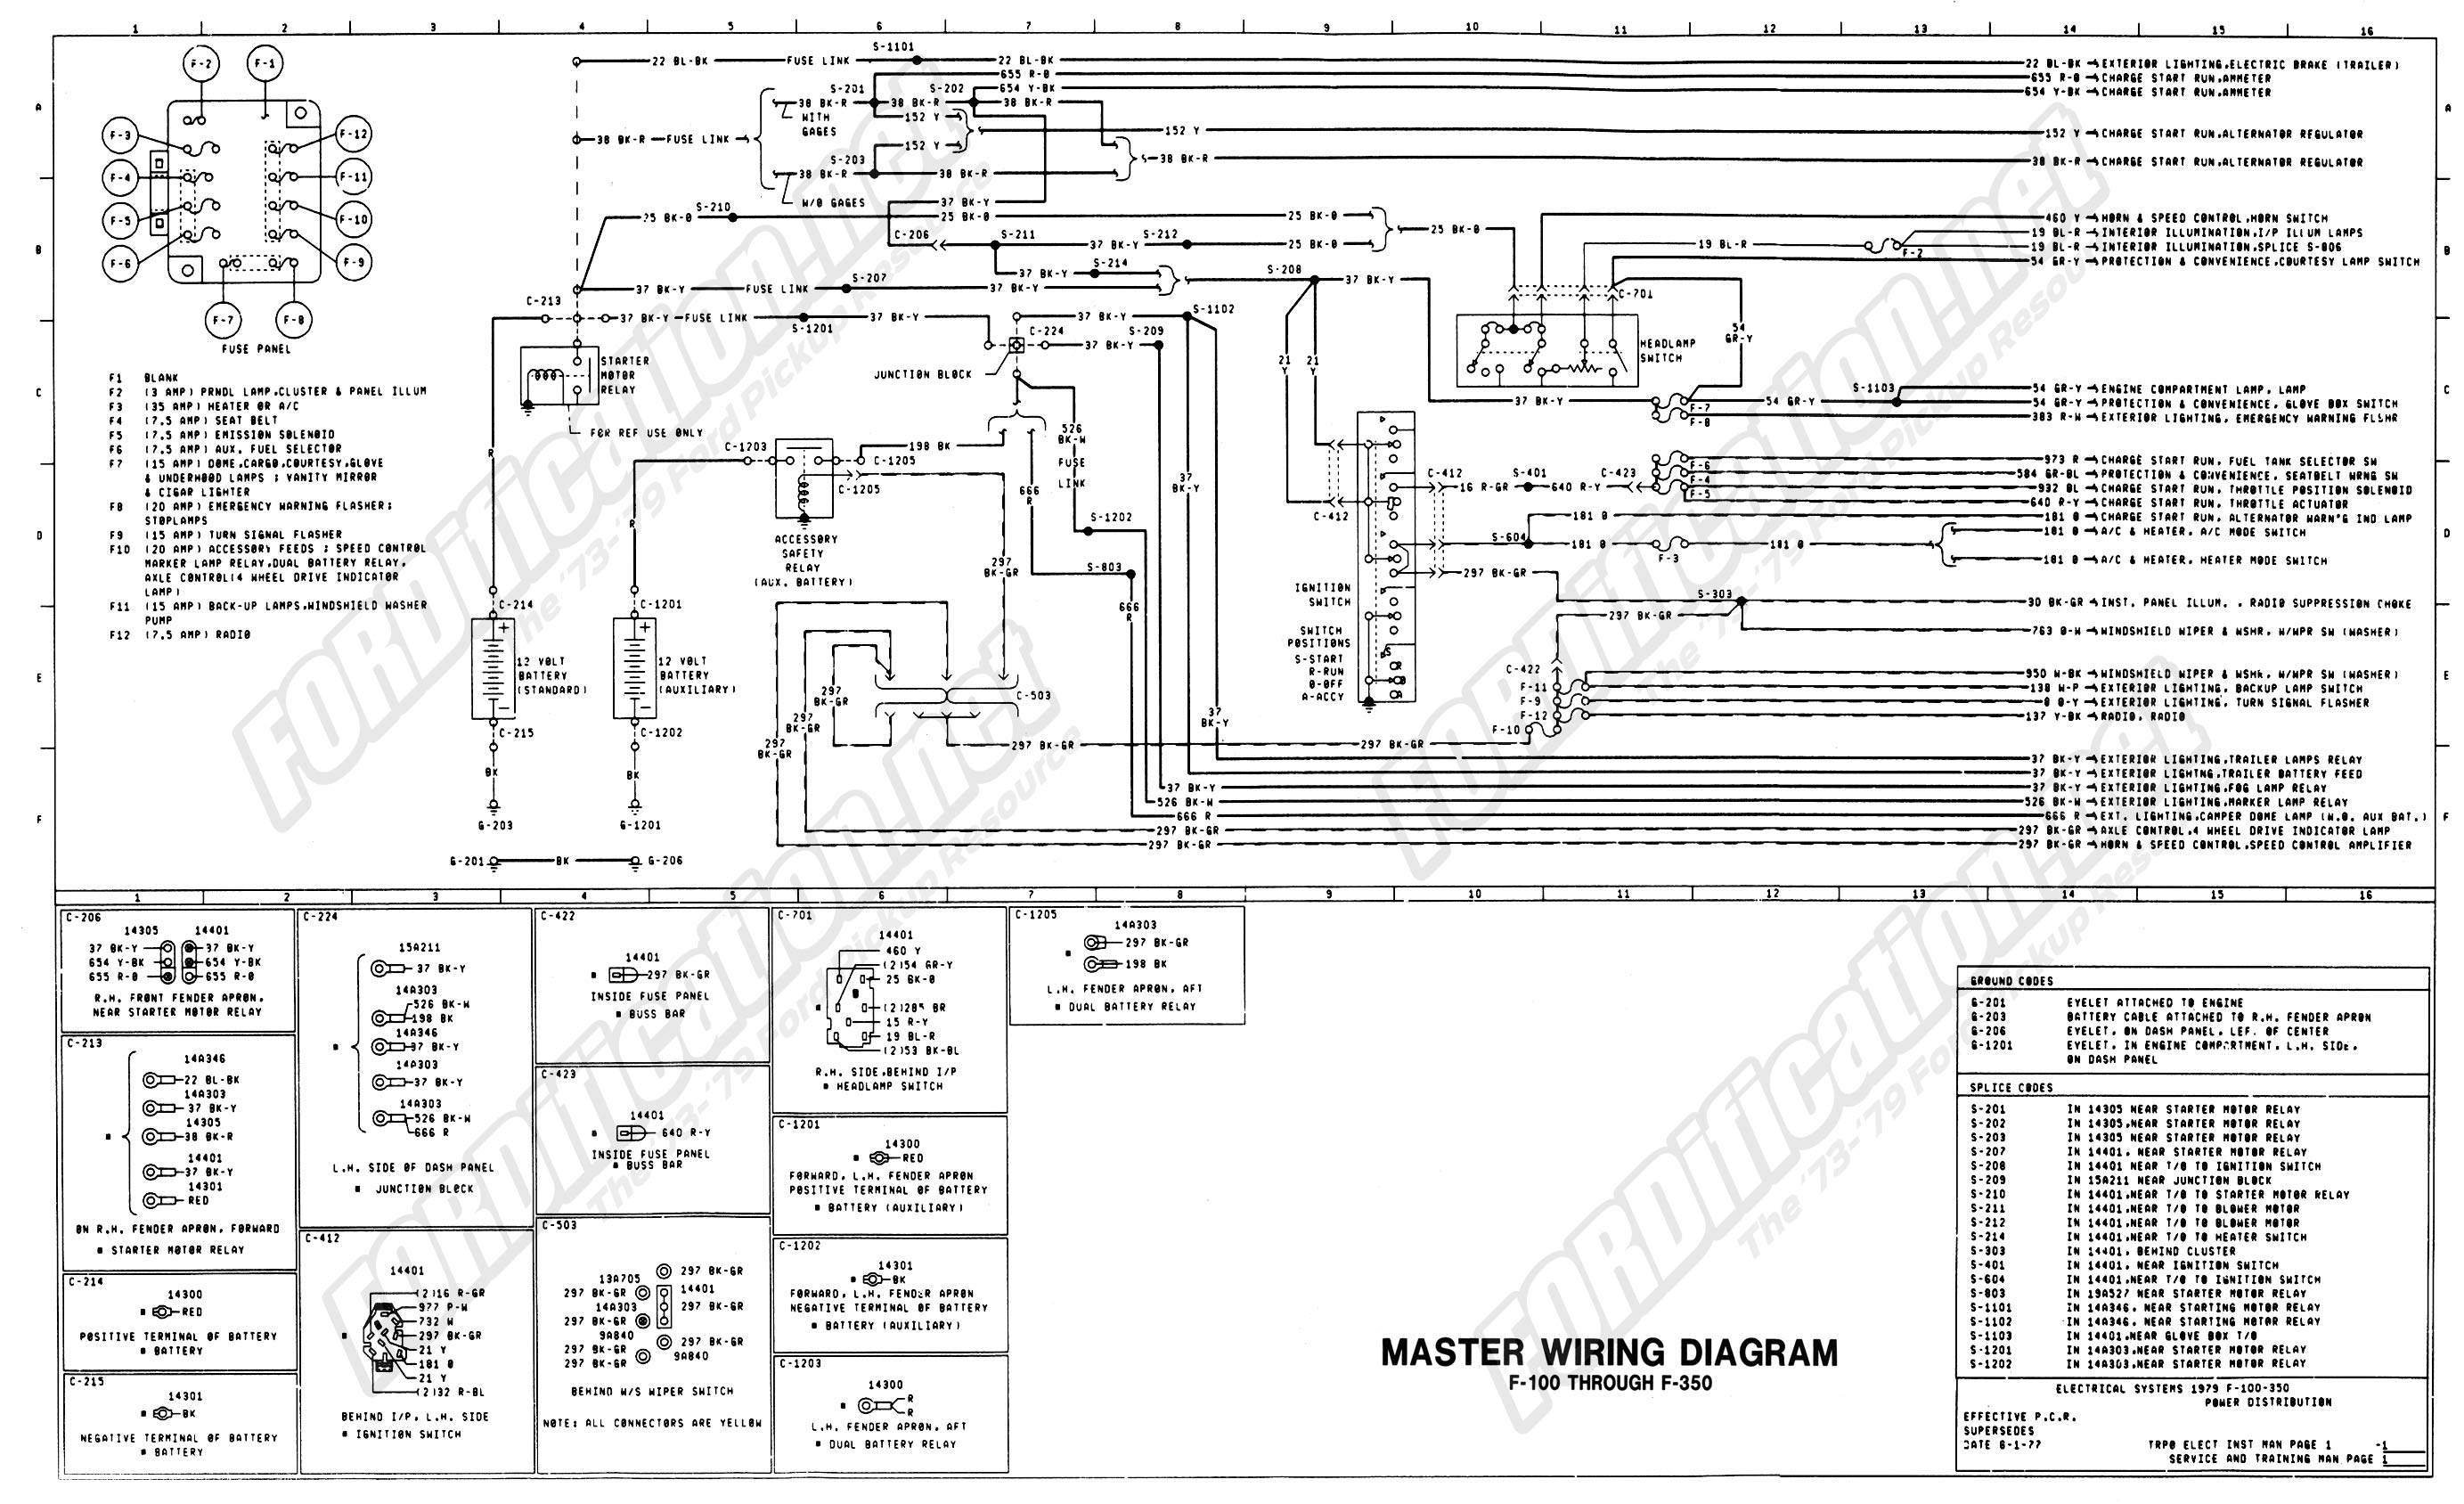 1986 ford F150 Radio Wiring Diagram | Free Wiring Diagram